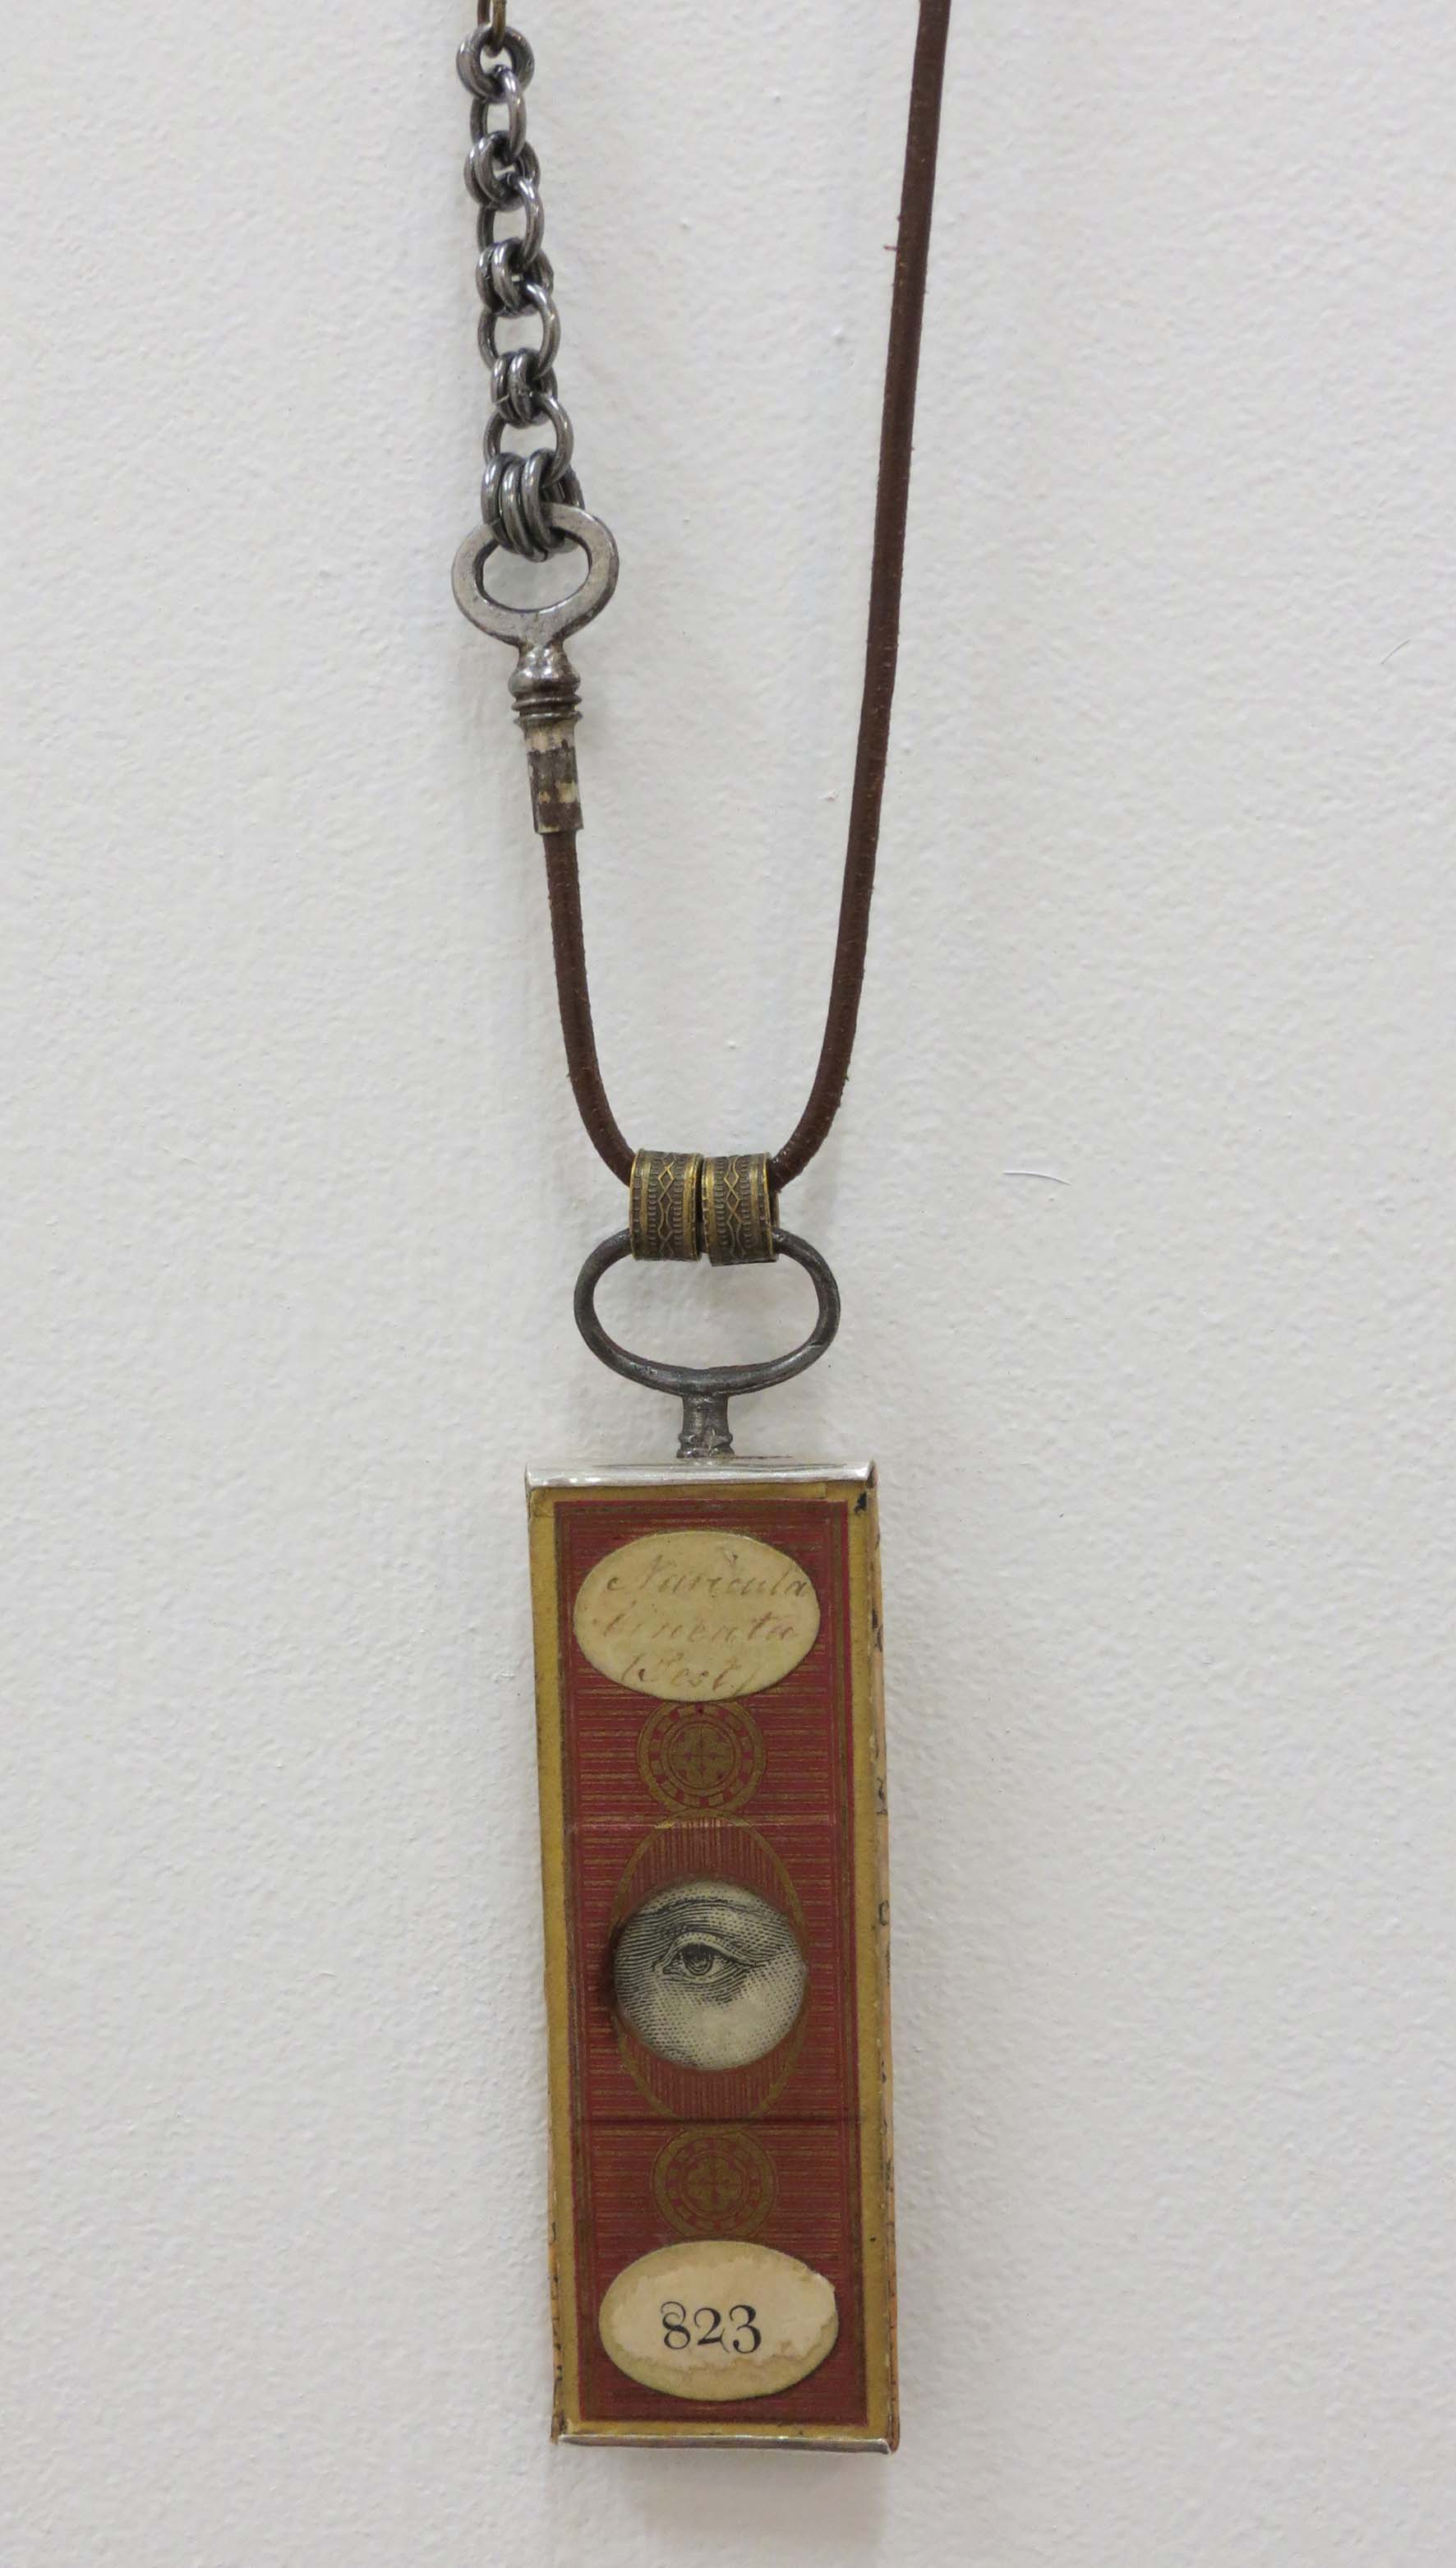 7. Kathy Aspinall, 'Oculus 823', 2018, Victorian papered slide, antique paper, leather, clock and watch keys, brass, silver, necklace, $495